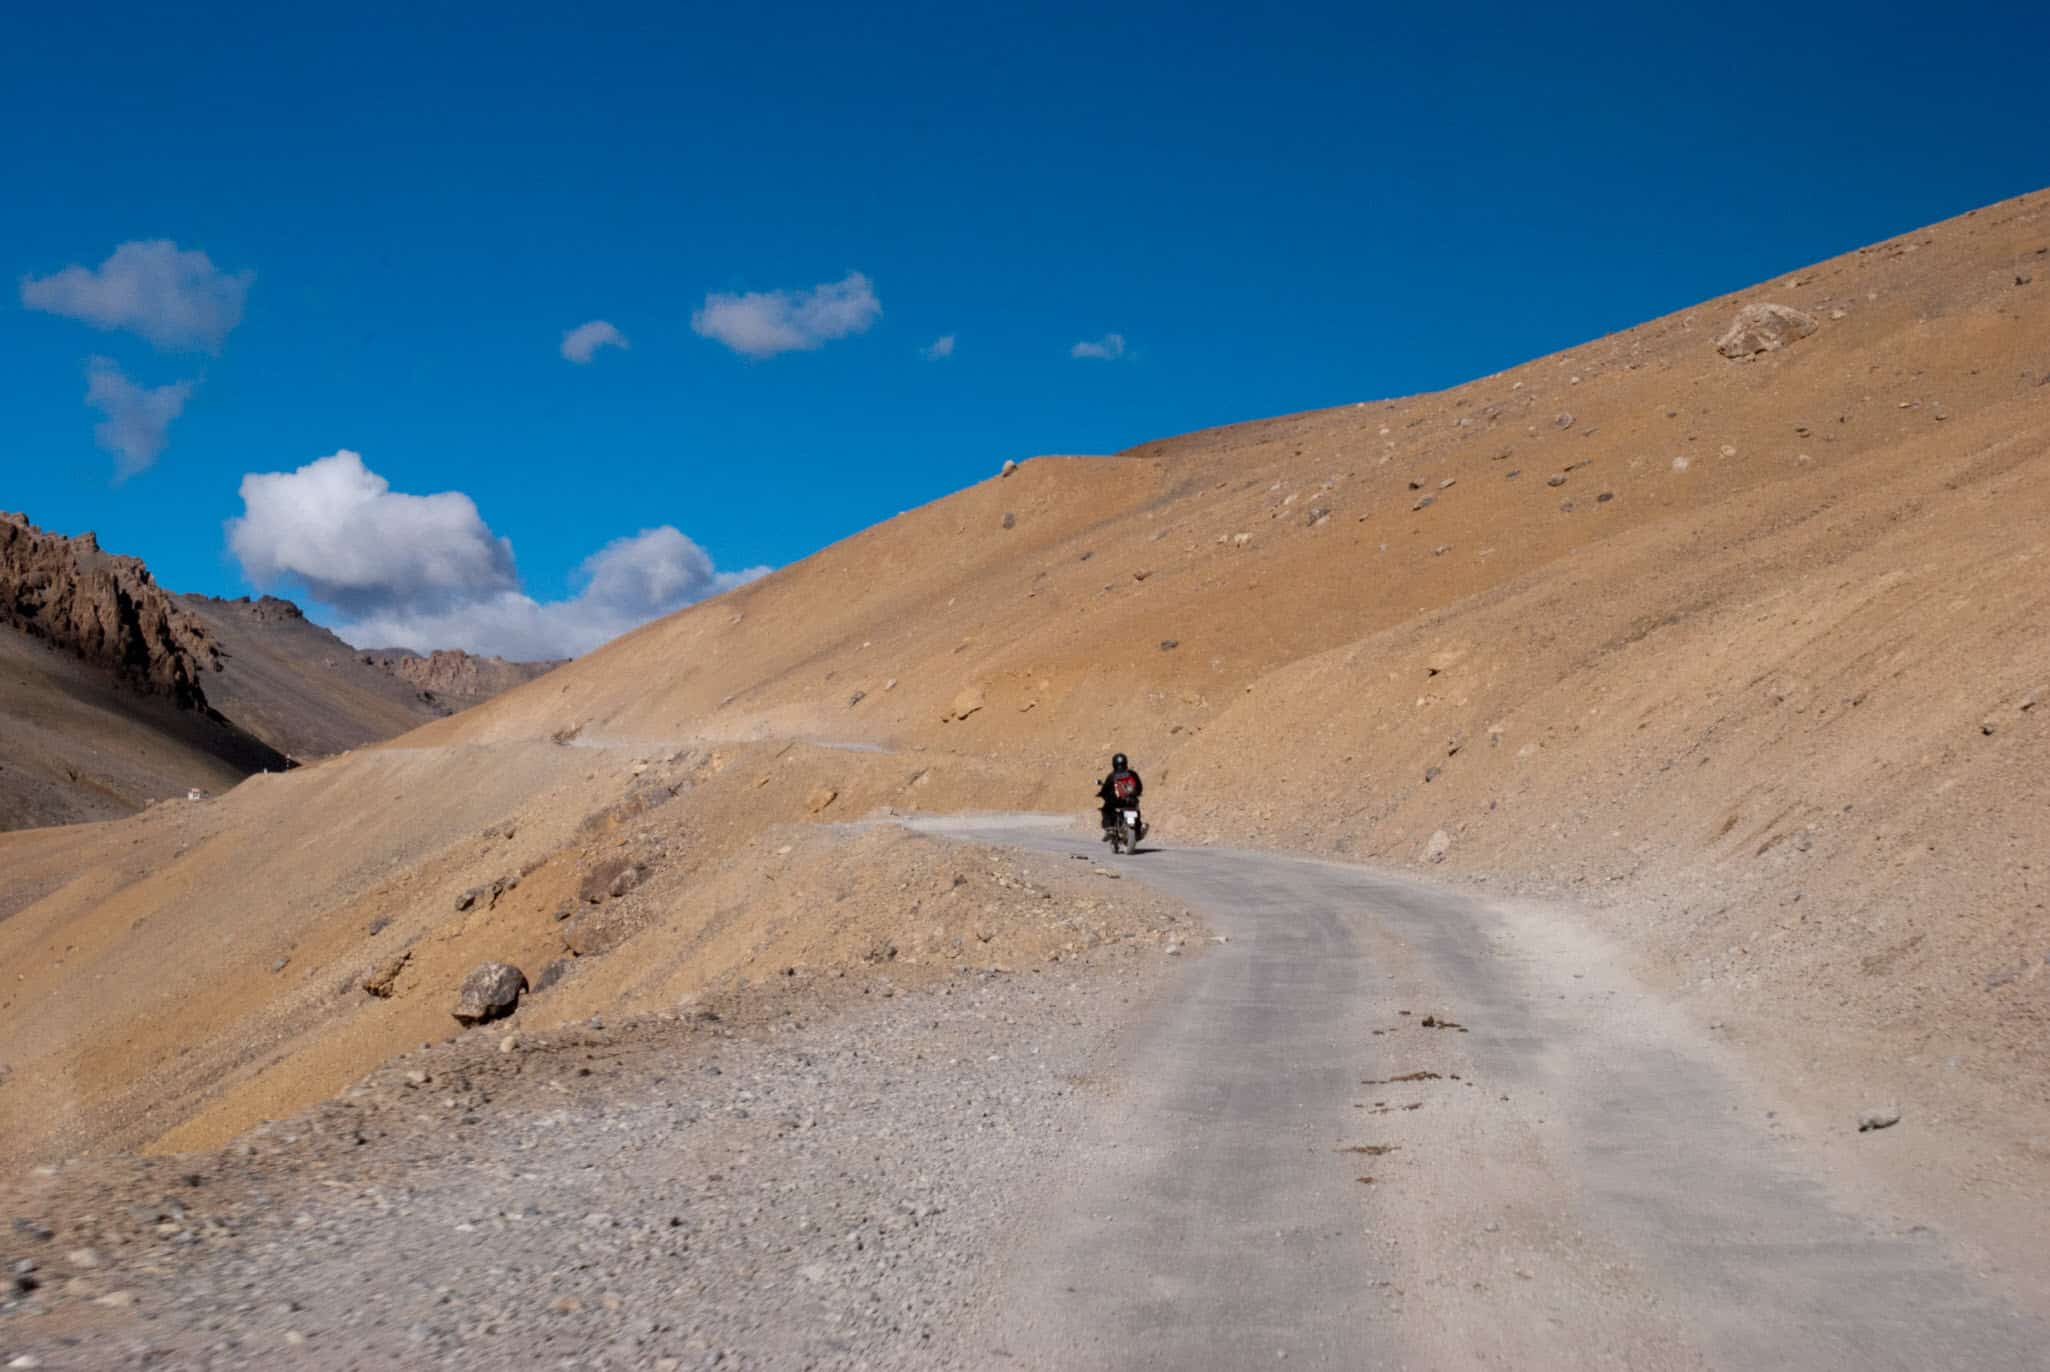 When you ride alone on Manali Leh Highway